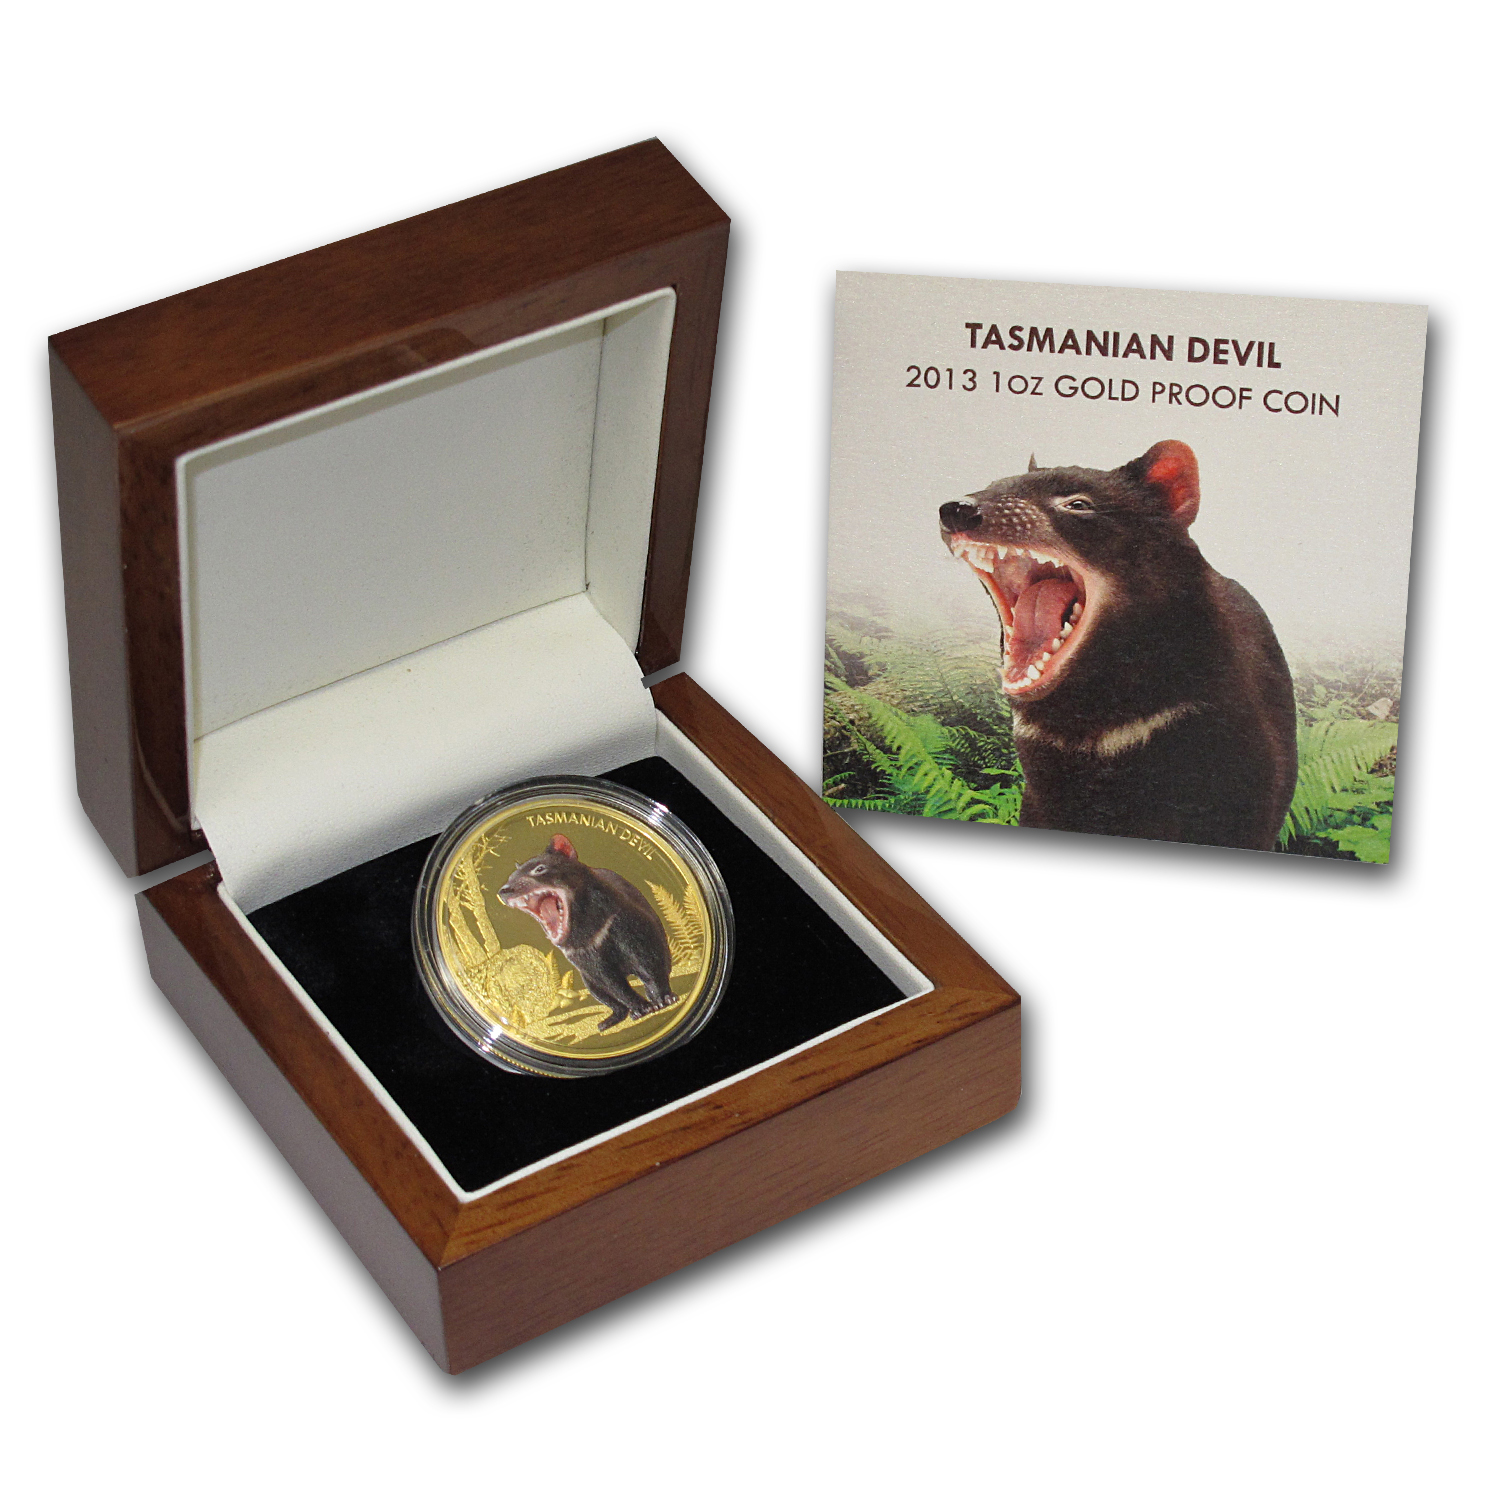 2013 1 oz Proof Gold Tasmanian Devil - Endangered and Extinct